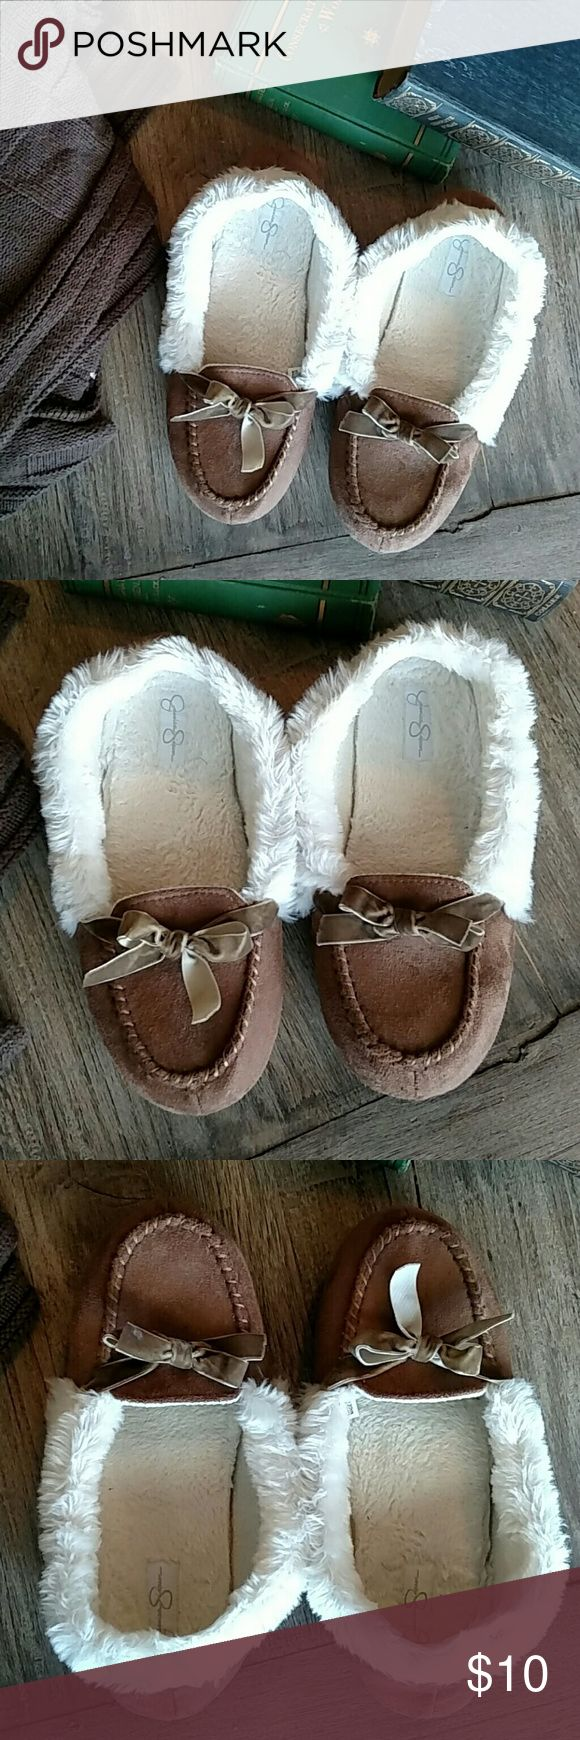 Jessica Simpson Slippers Furry slippers by Jessica Simpson. Light padding to inside and hard soles on bottoms. White inner and brown outer. Ribbon bow on top. Gently used condition. Jessica Simpson Shoes Slippers